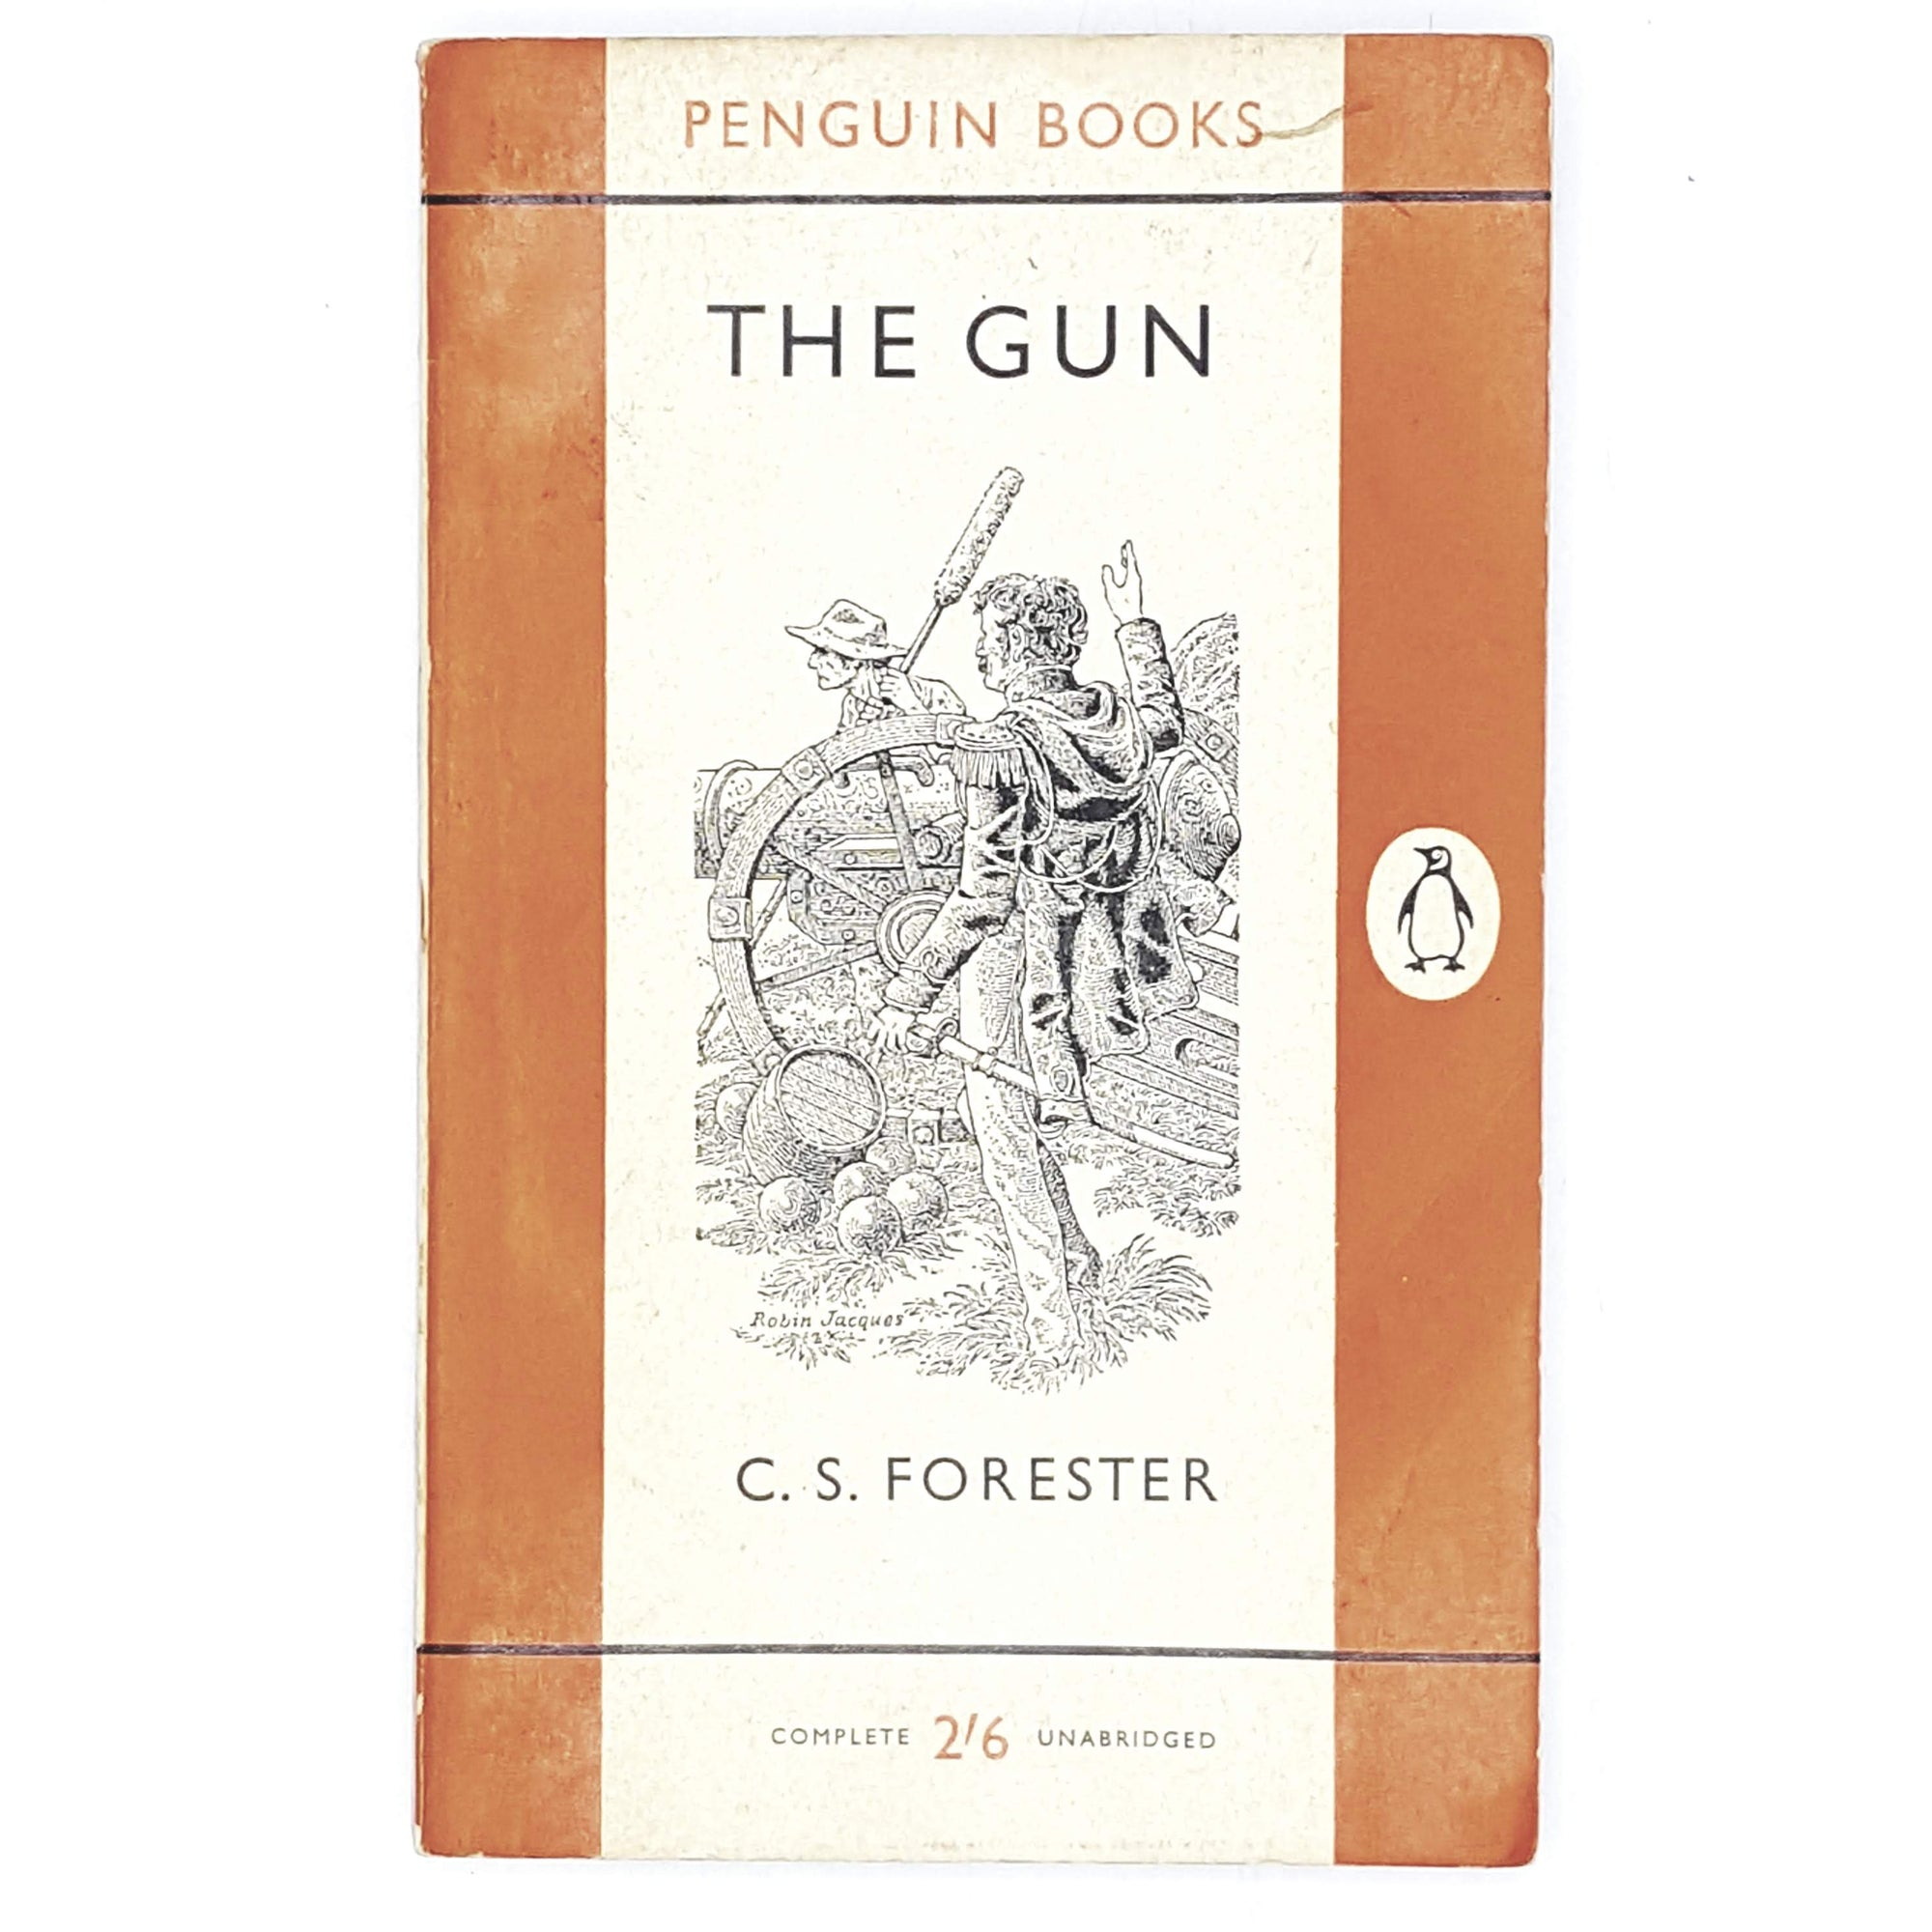 gun-cs-forester-orange-penguin-vintage-book-country-house-library